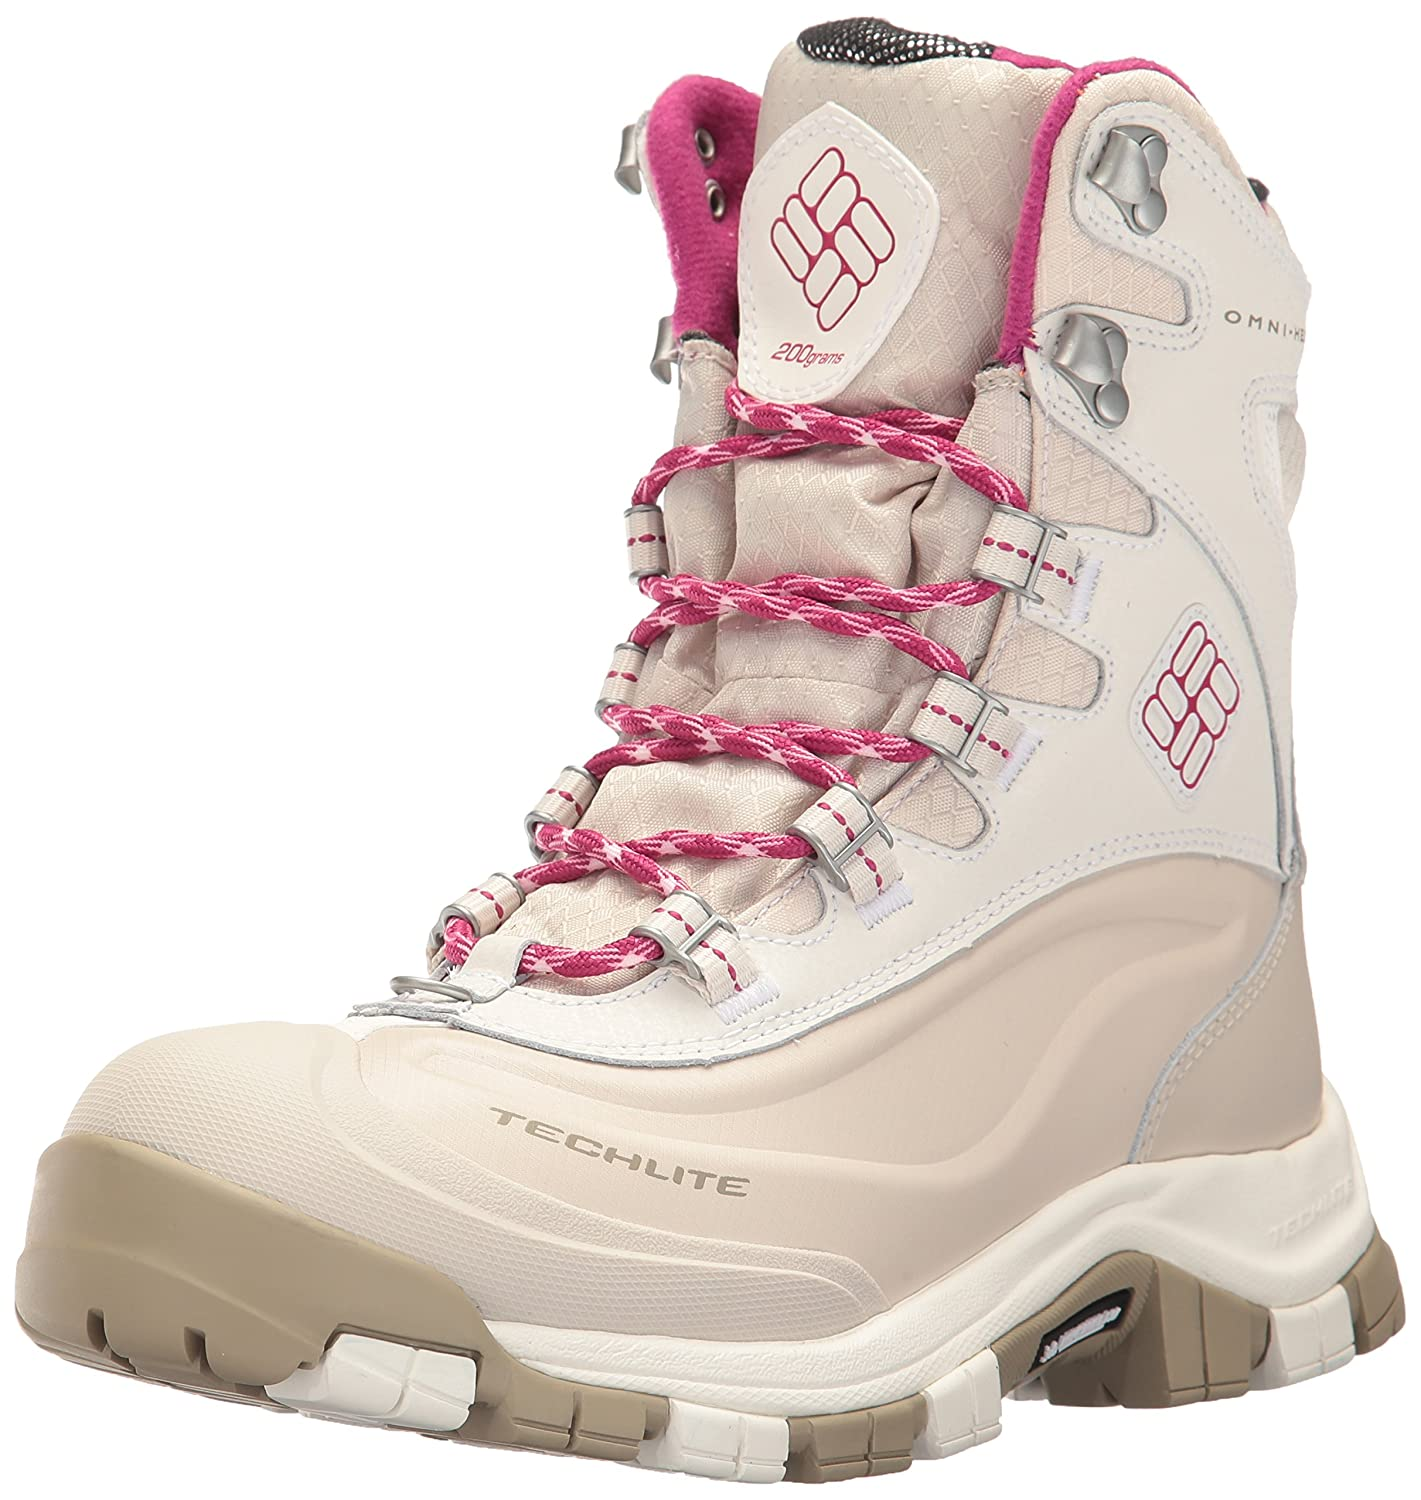 Columbia Women's Bugaboot Plus Omni-Heat Michelin Snow Boot B01MQXW2AM 10.5 B(M) US|Sea Salt, Deep Blush